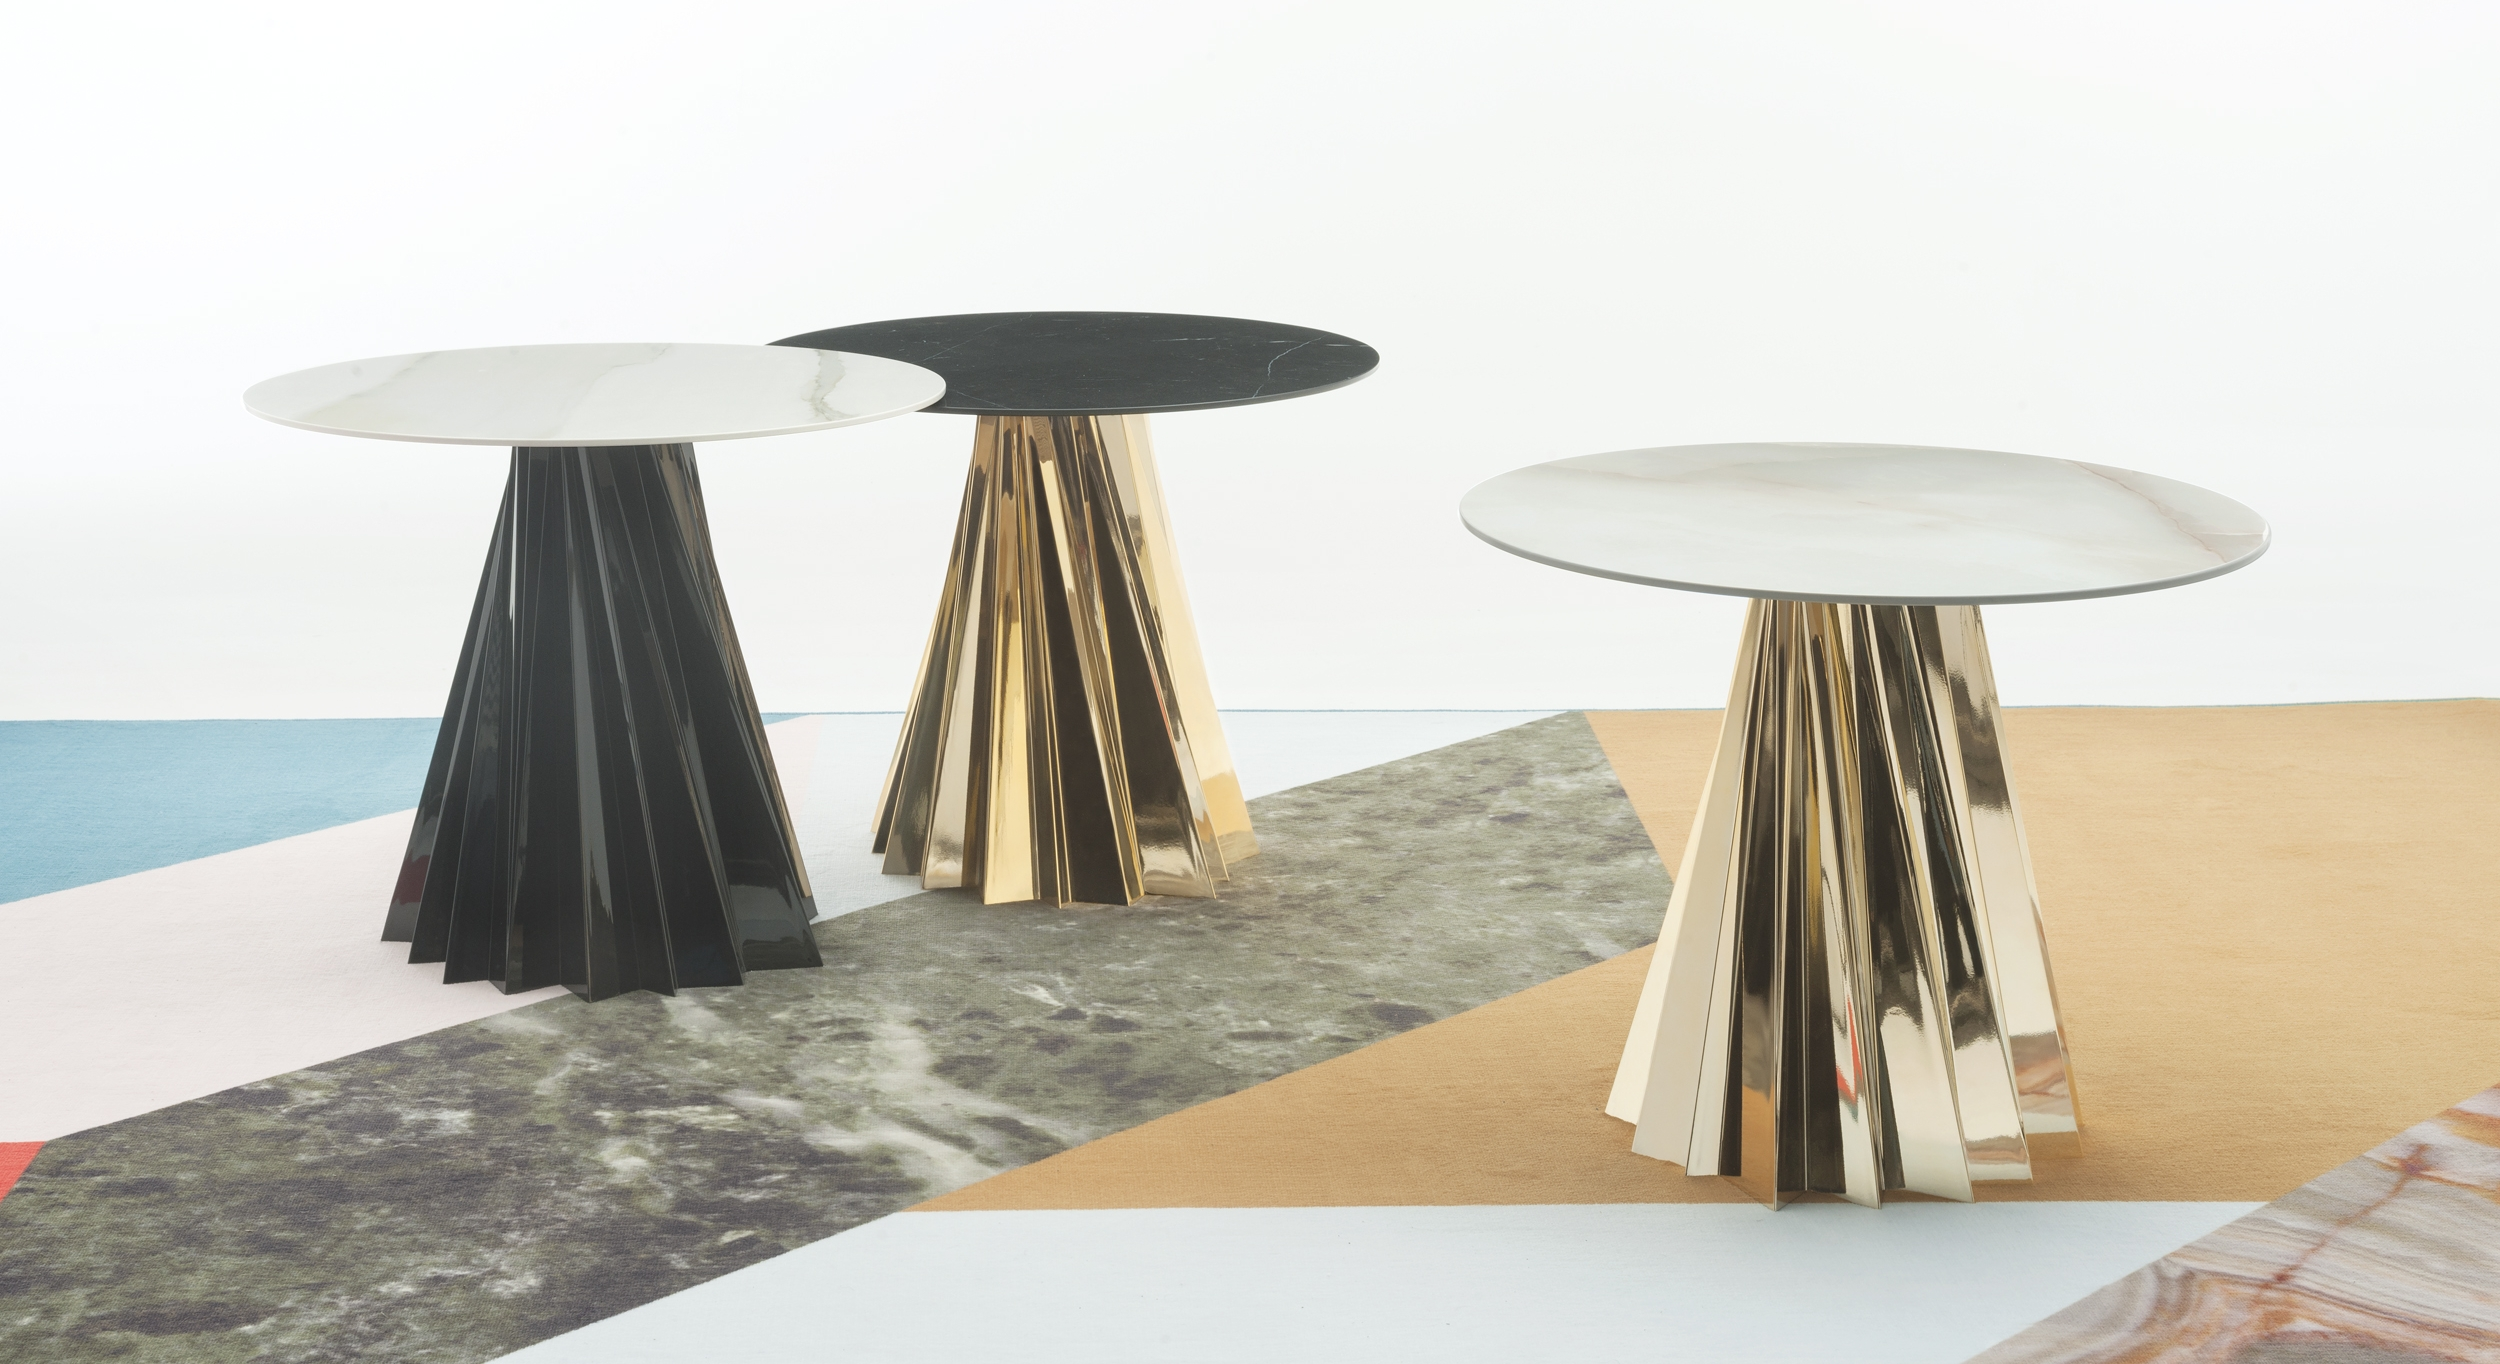 The Shanghai coffee table by Mario Bellini for Kartell.